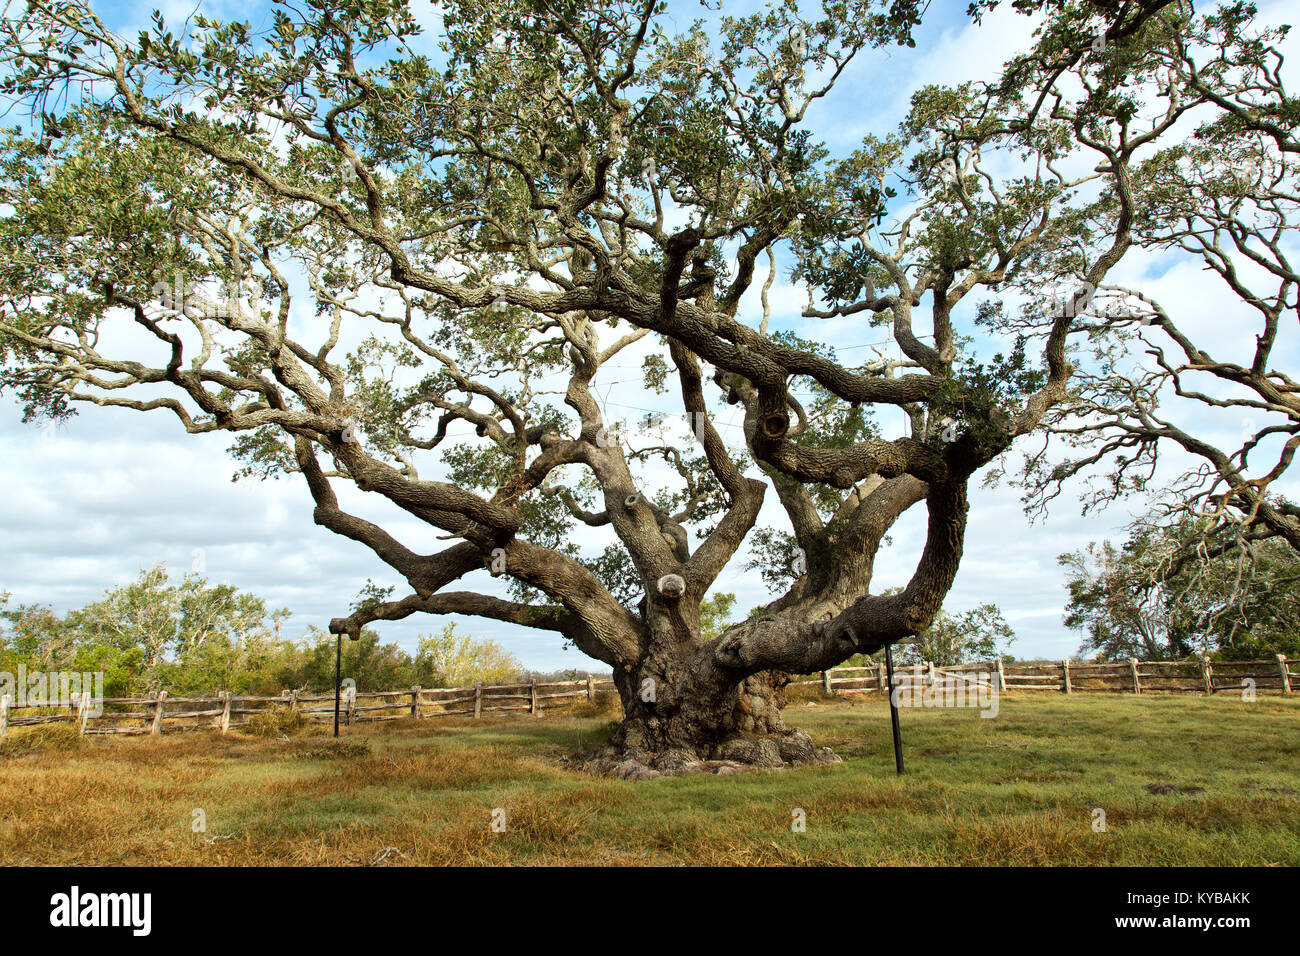 'Big Tree'  Southern Live Oak  'Quercus virginiana', in excess of  1000 years old. - Stock Image